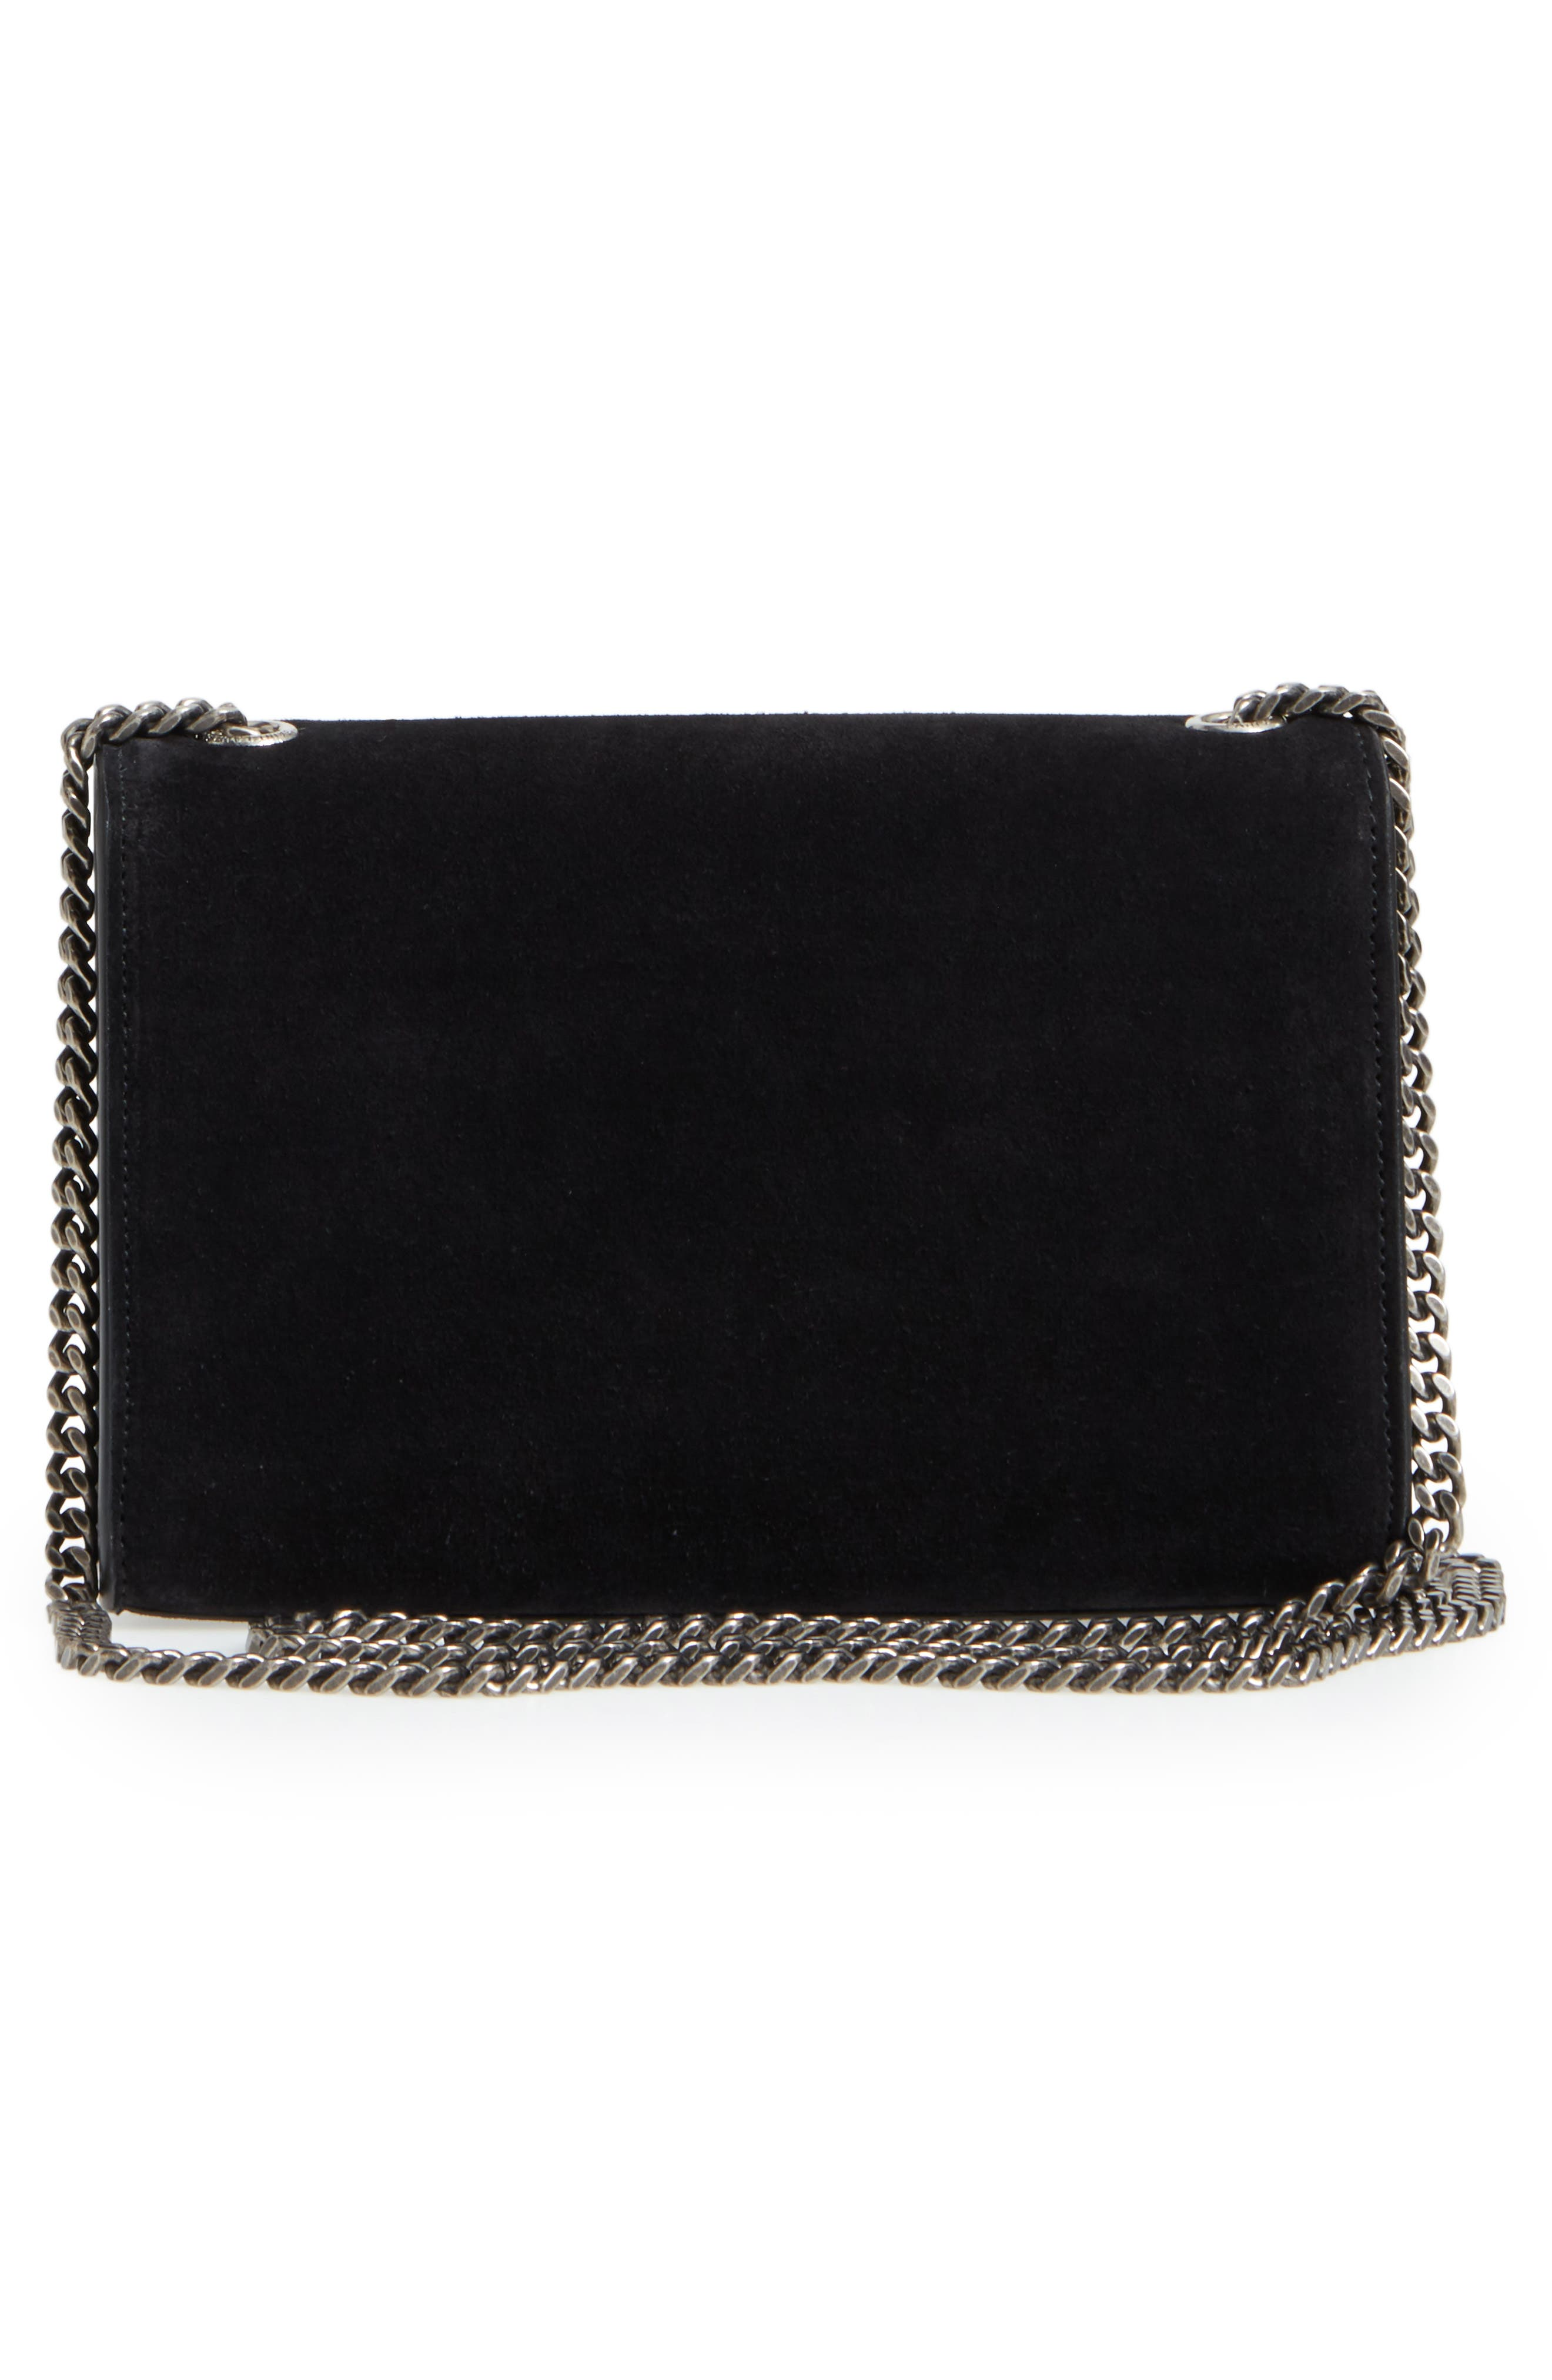 Small Kate Studded Leather Crossbody Bag,                             Alternate thumbnail 3, color,                             Noir Multi